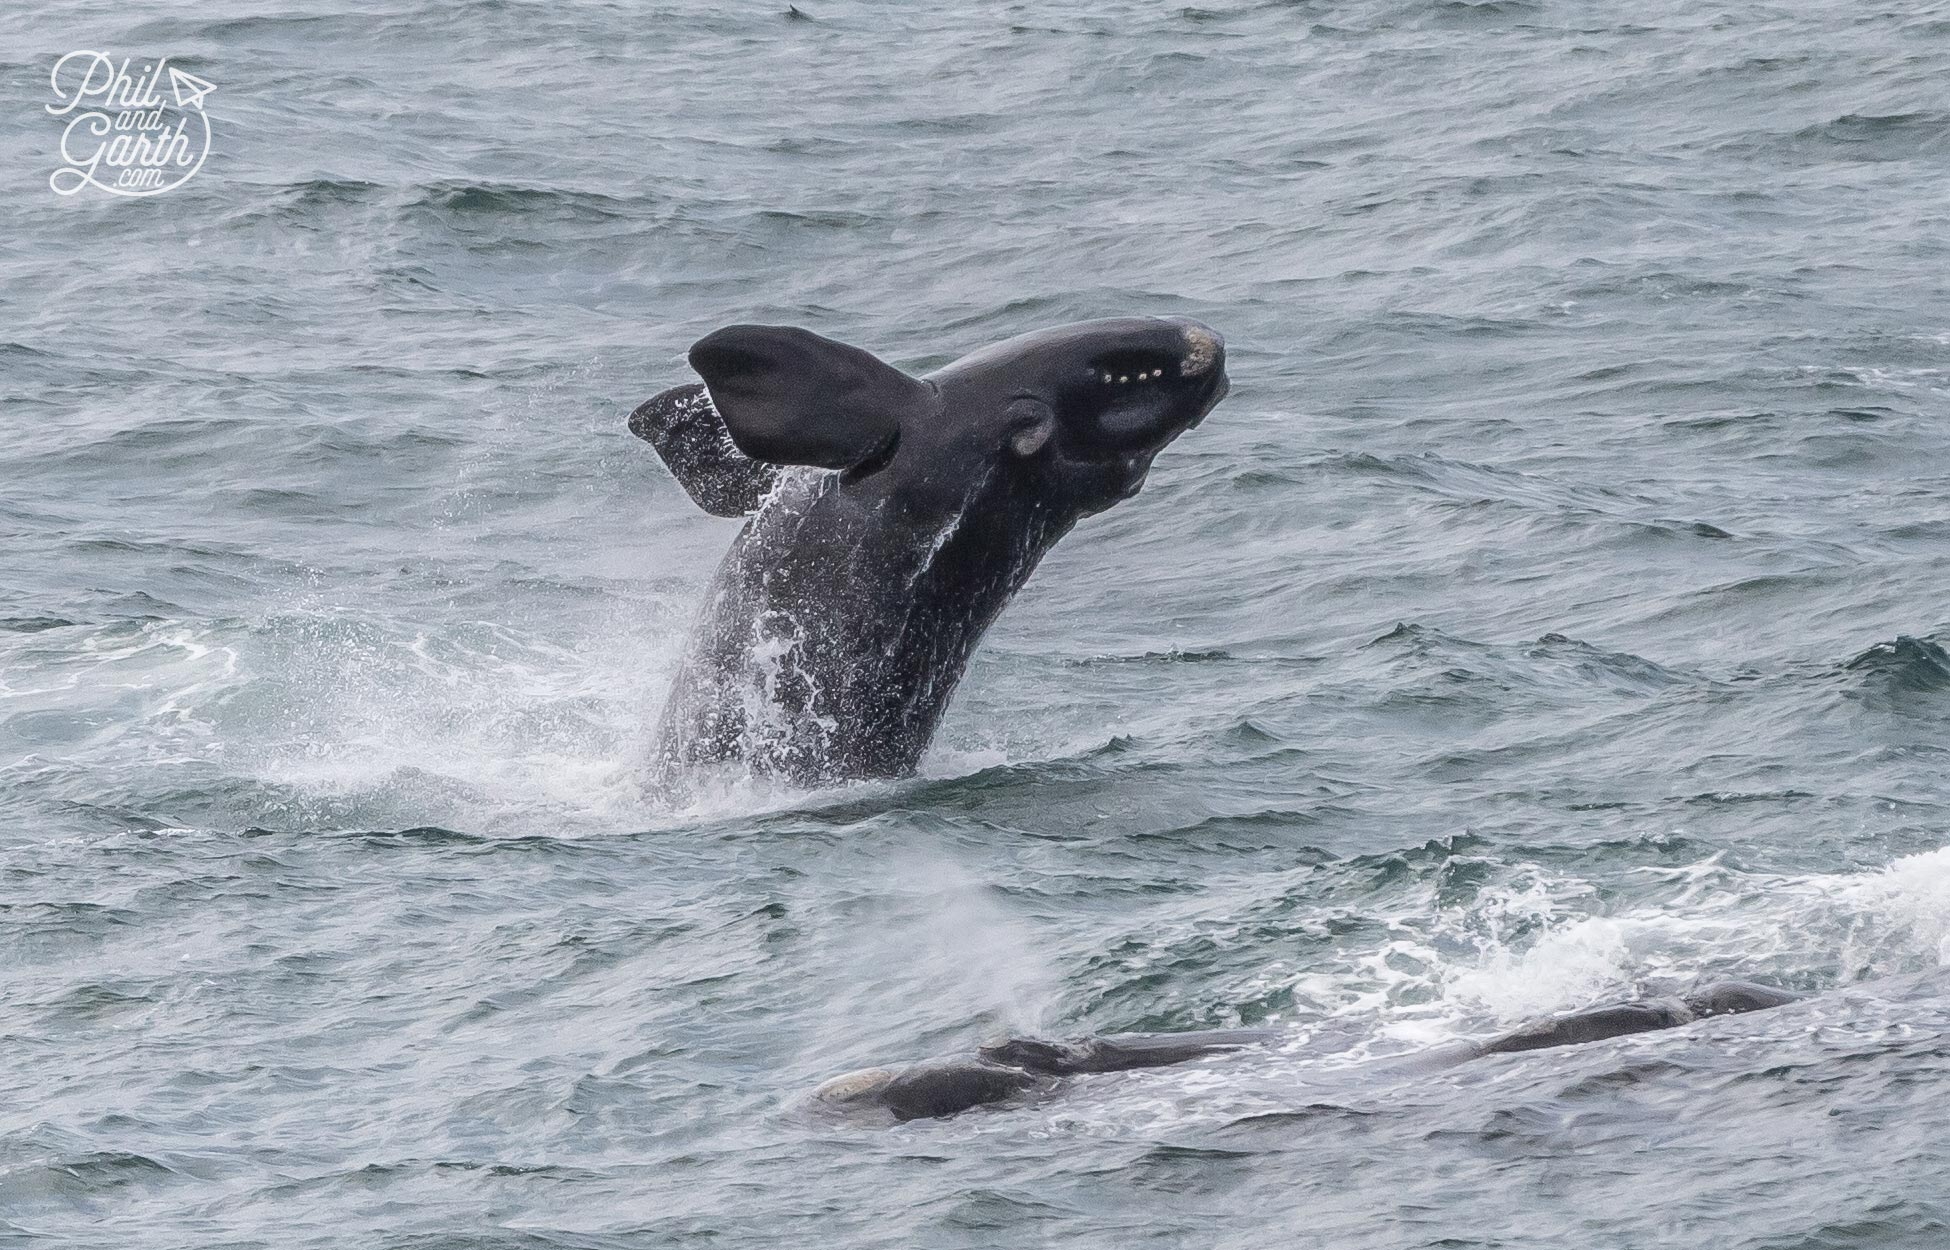 Hermanus Whale Watching - These huge and gentle giants are mesmerising to watch